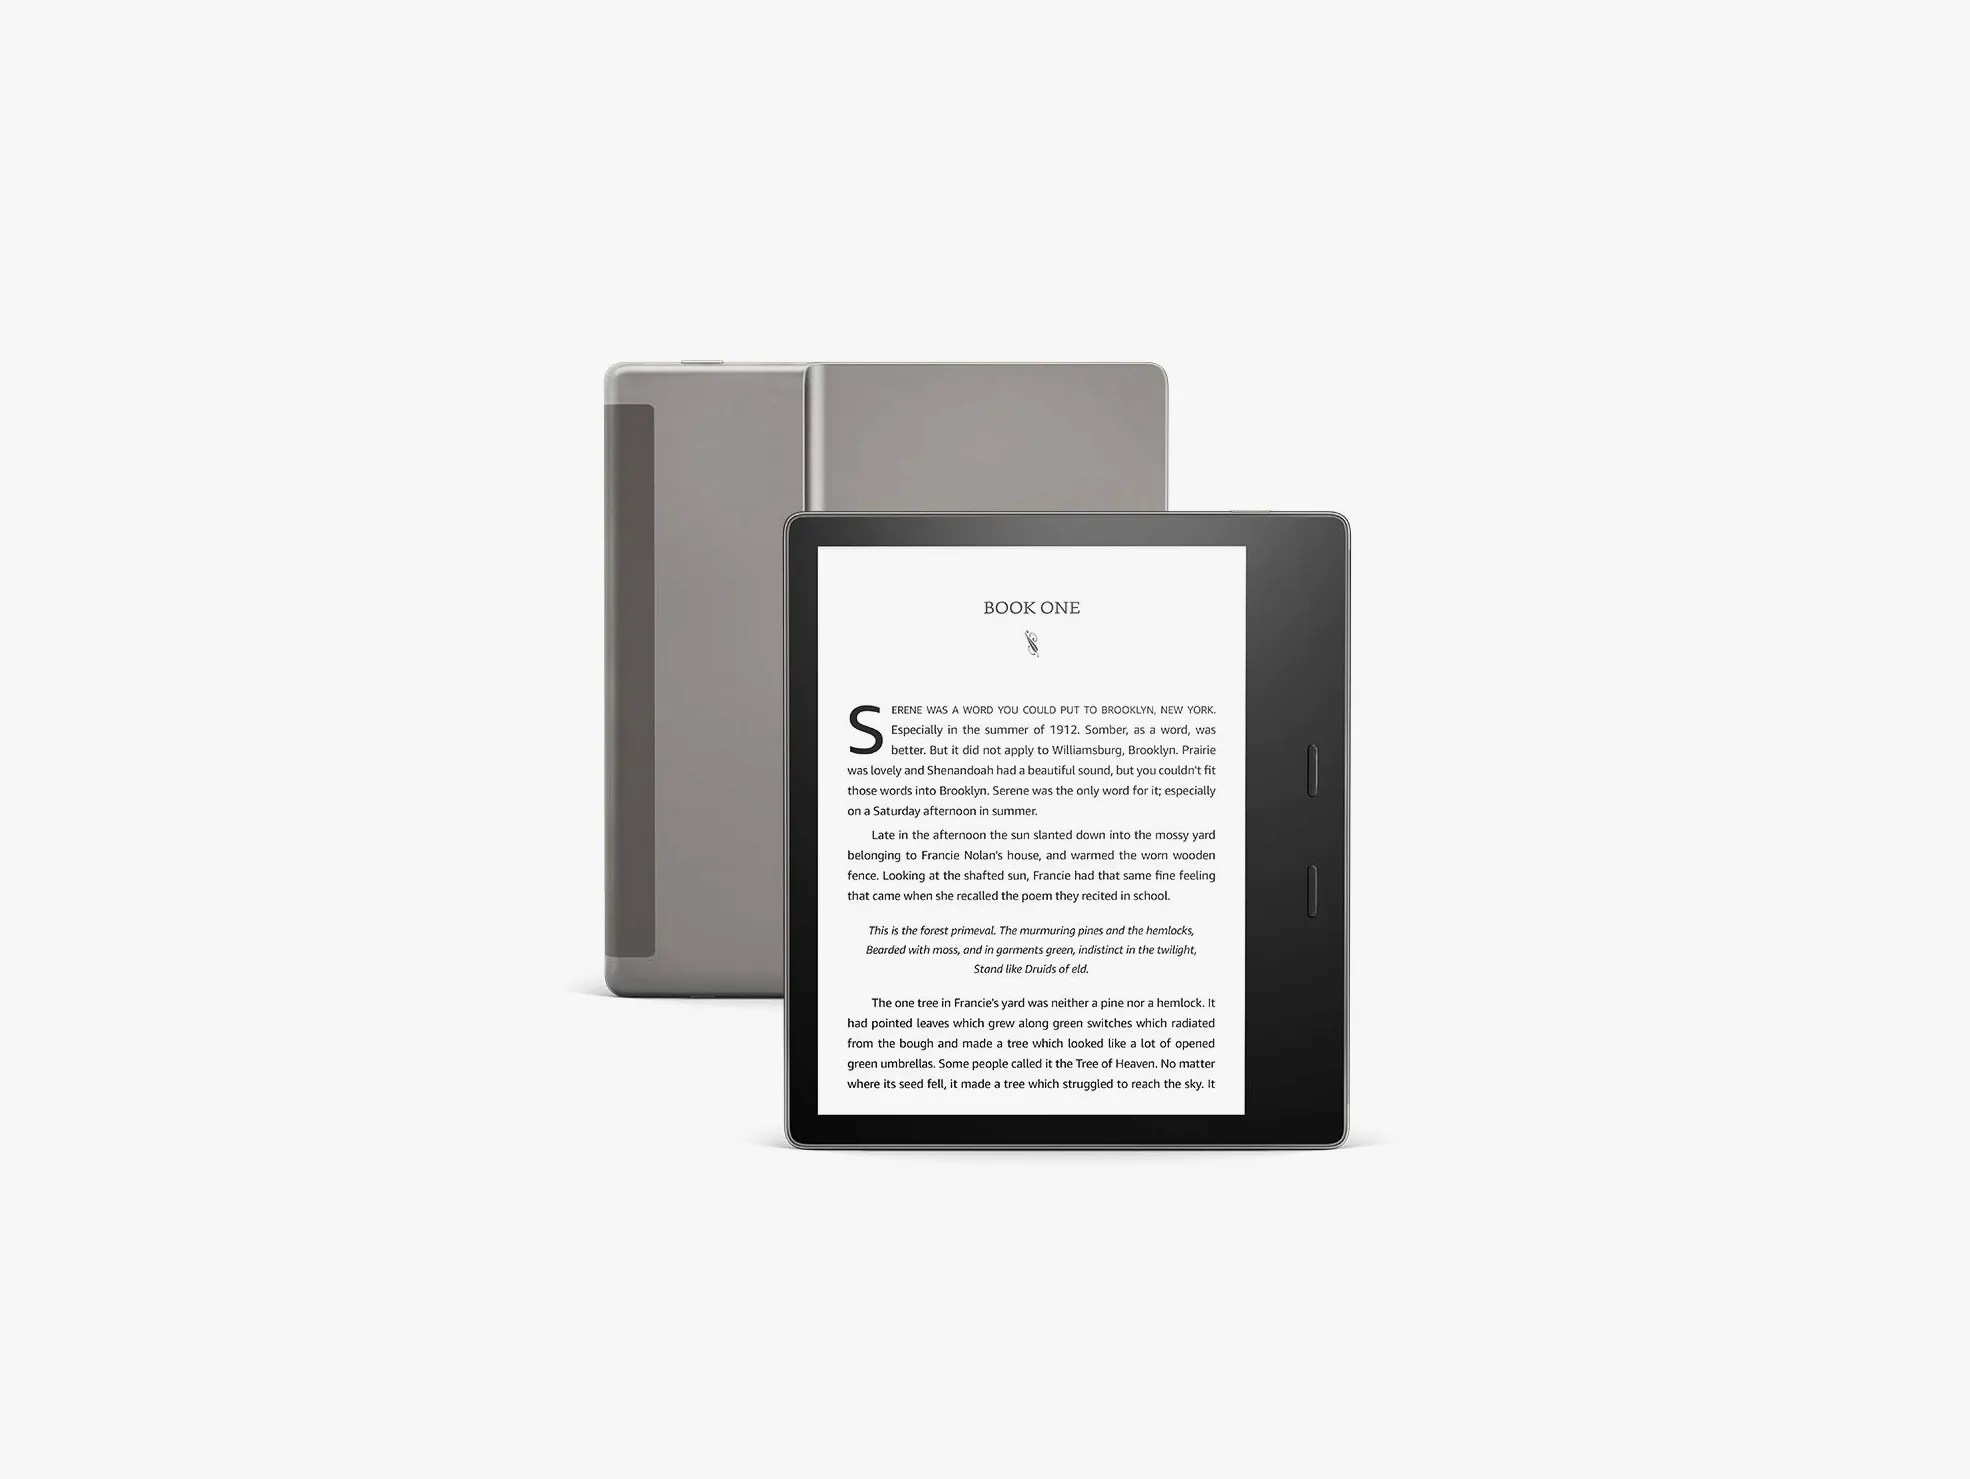 Amazon Audible Affiliate The Best Kindle To Buy In 2019 And Which To Avoid Wired